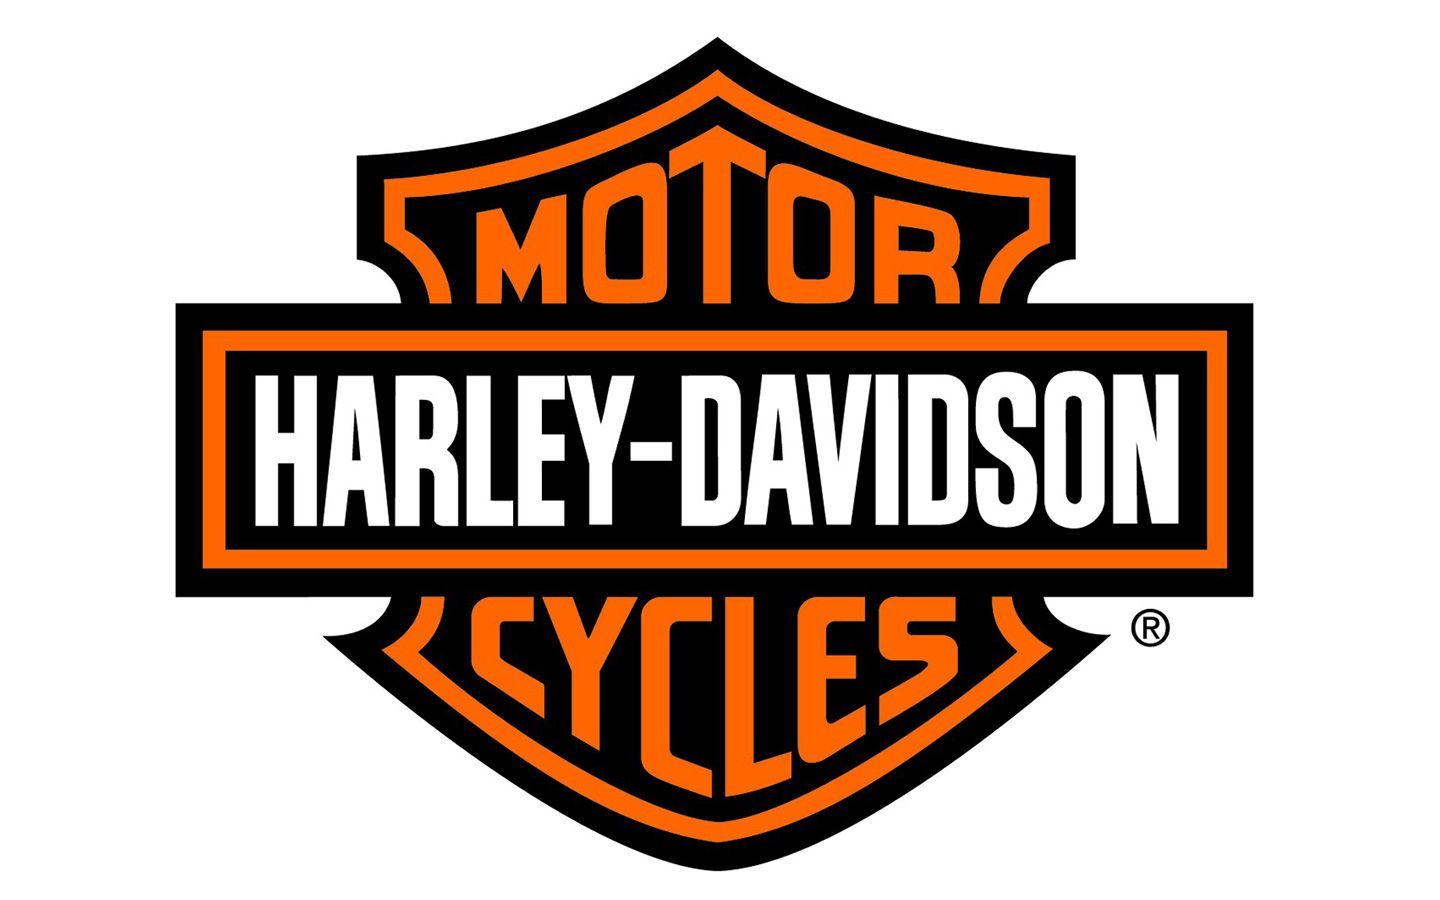 harley davidson declines in sales